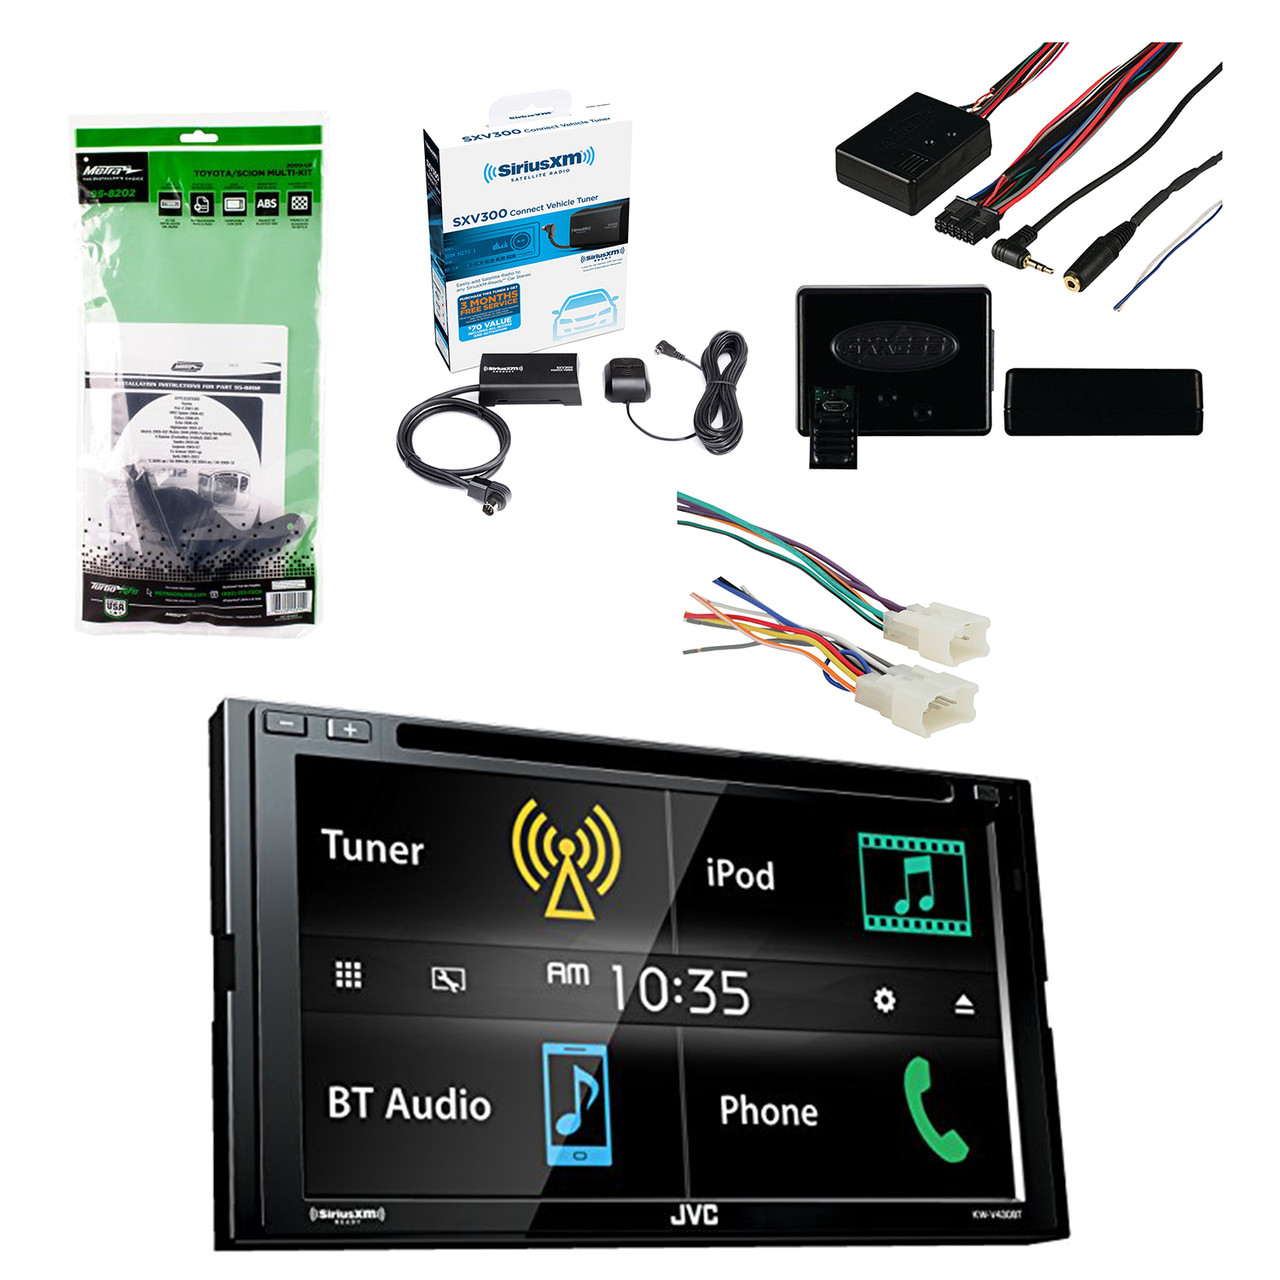 jvc 6 8 inch lcd touchscreen 2 din bluetooth car stereo receiver w siriusxm satellite radio vehicle tuner kit metra multi dash kit radio wiring harness  [ 1280 x 1280 Pixel ]